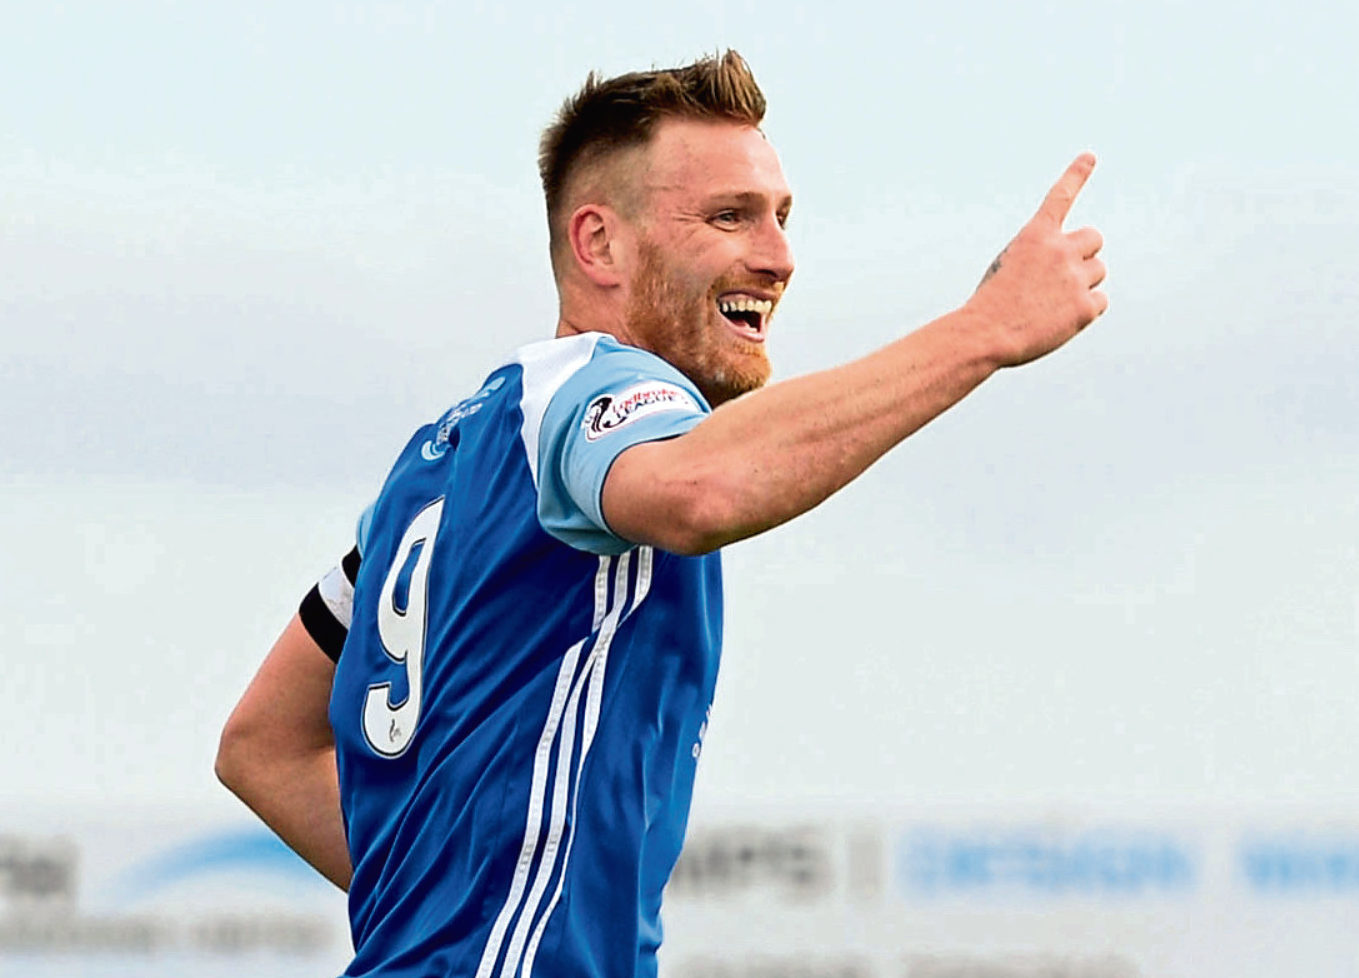 Peterhead's Rory McAllister celebrates his goal.